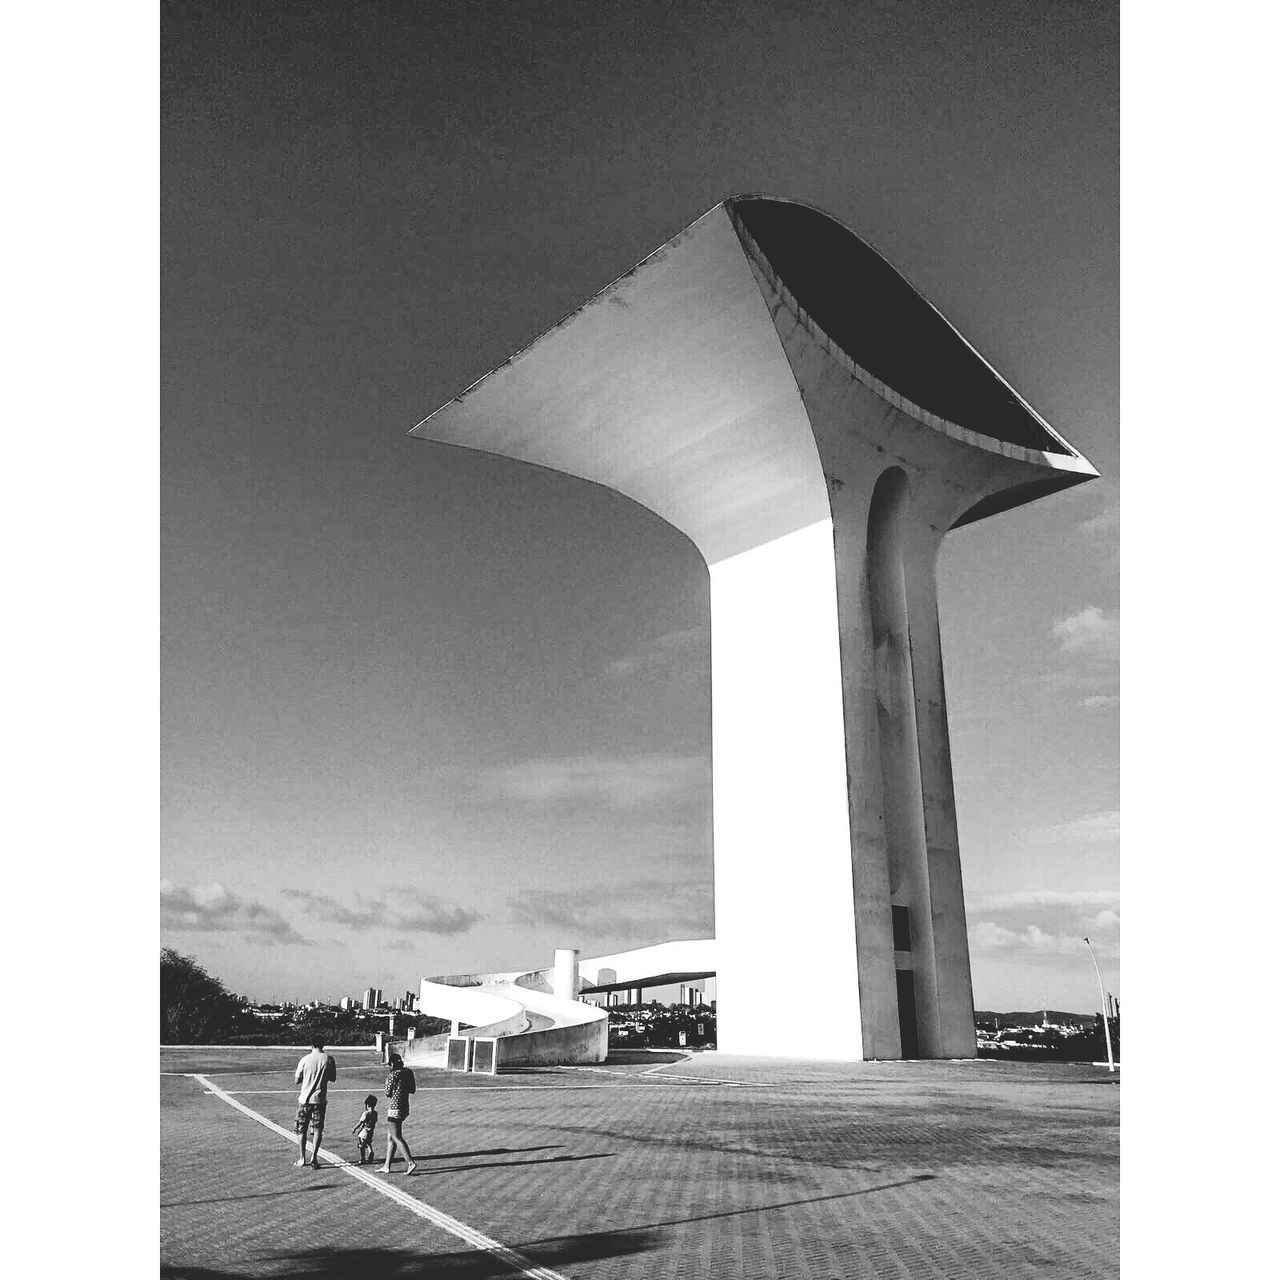 """Time upon THE grand eye seeing it all... Oscar Niemeyer's """" Parque da Cidade """" in Natal/Brazil welc🌍ming ... just stunning Built Structure Architecture Day Real People Men Outdoors Building Exterior Sky People Thesecretspaces Brazil NatalRN Natal Arquitetura EyeEmNewHere Art Is Everywhere TCPM The Street Photographer - 2017 EyeEm Awards The Architect - 2017 EyeEm Awards"""